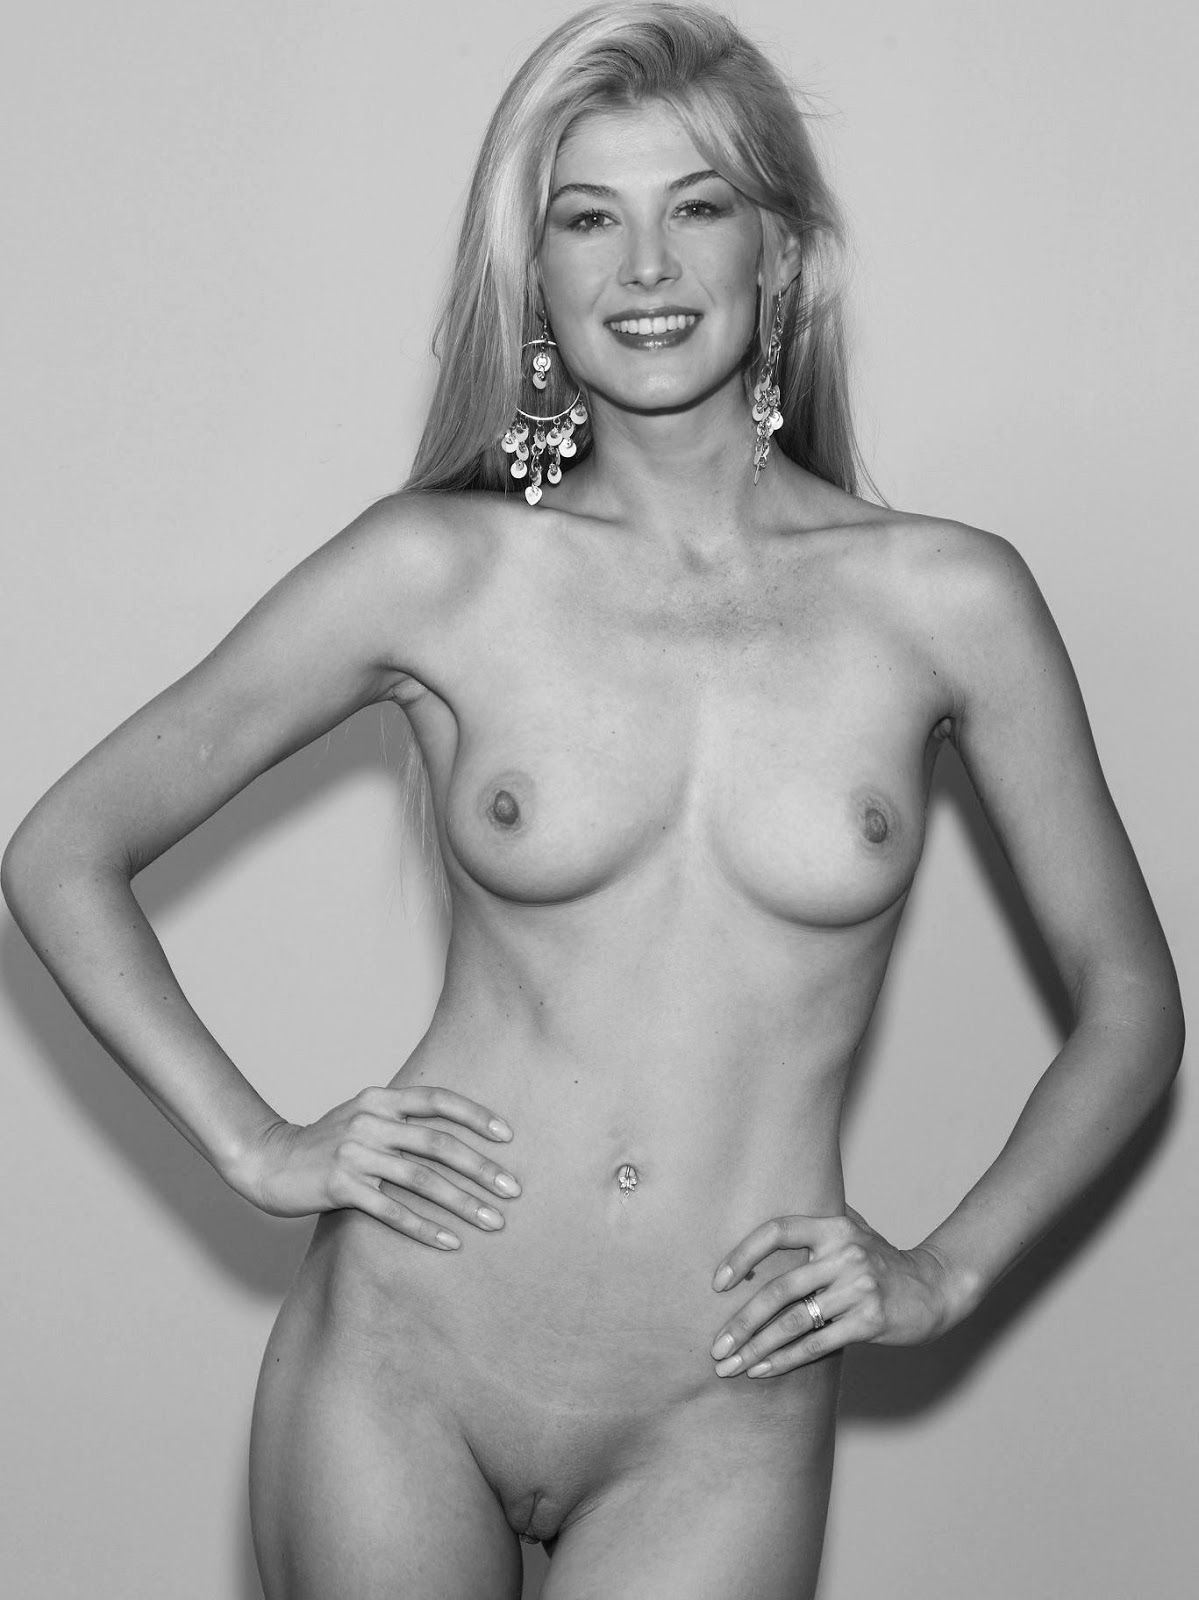 Middle aged women full frontal